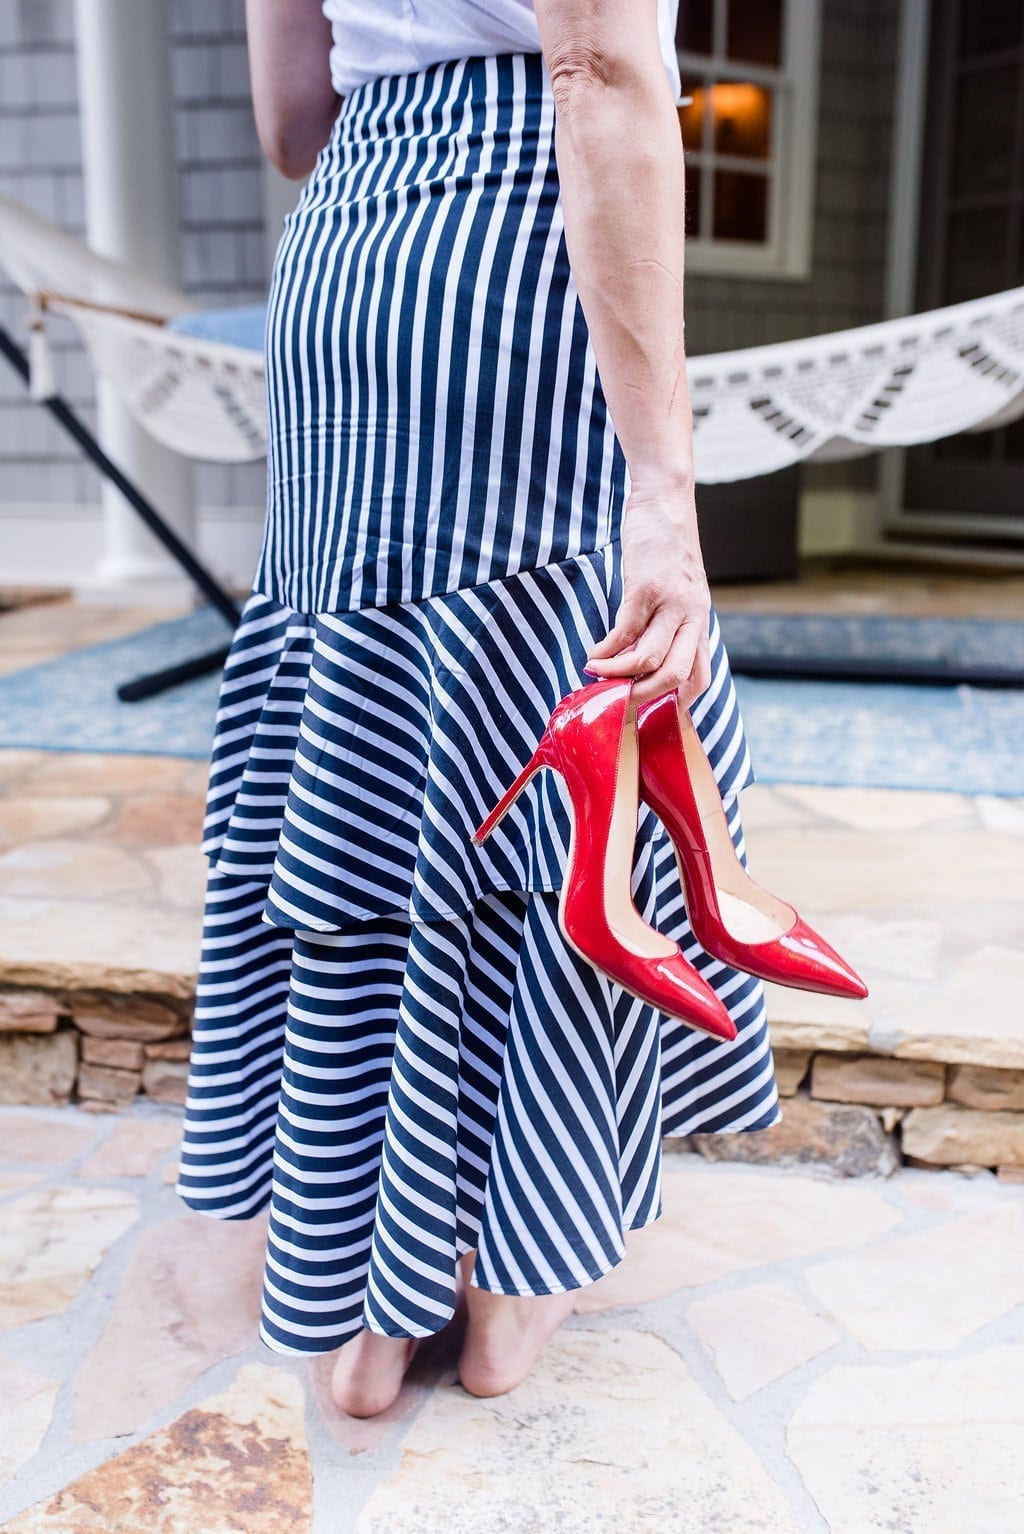 Navy and White striped skirt with red patent leather pumps.